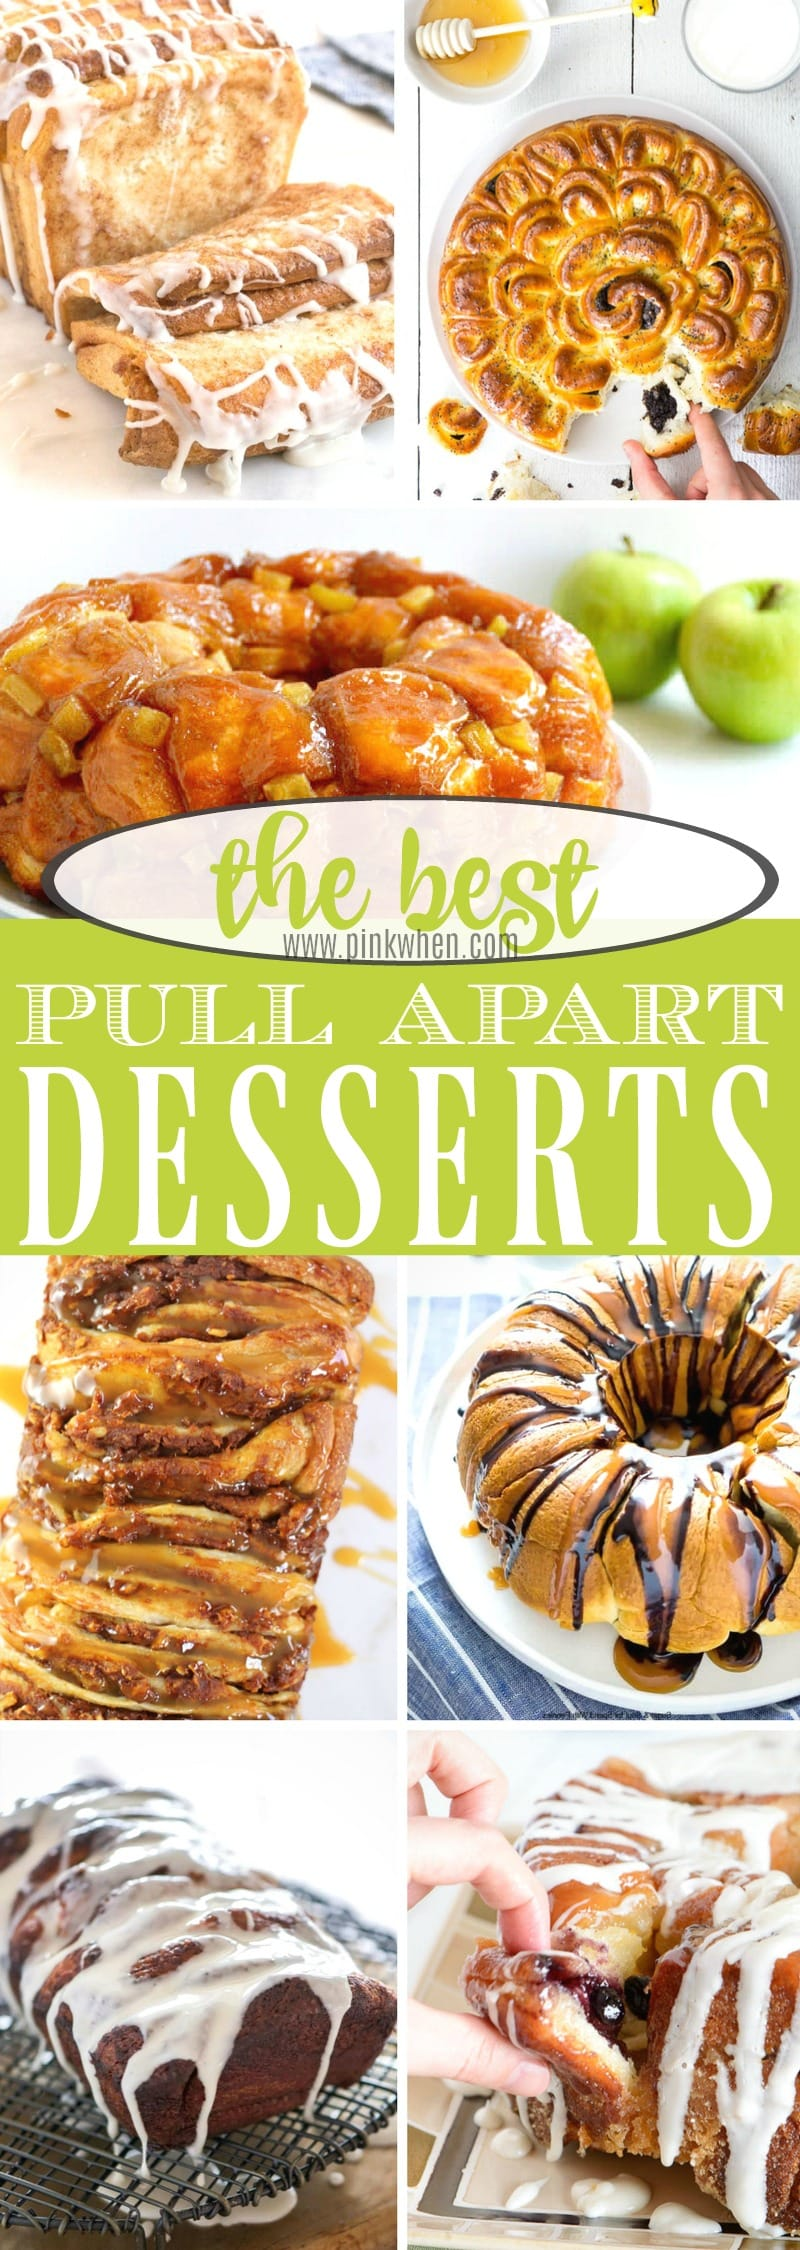 The best pull apart desserts! Nothing is better than eating dessert with only your hands. #dessertrecipes #pullapartdesserts